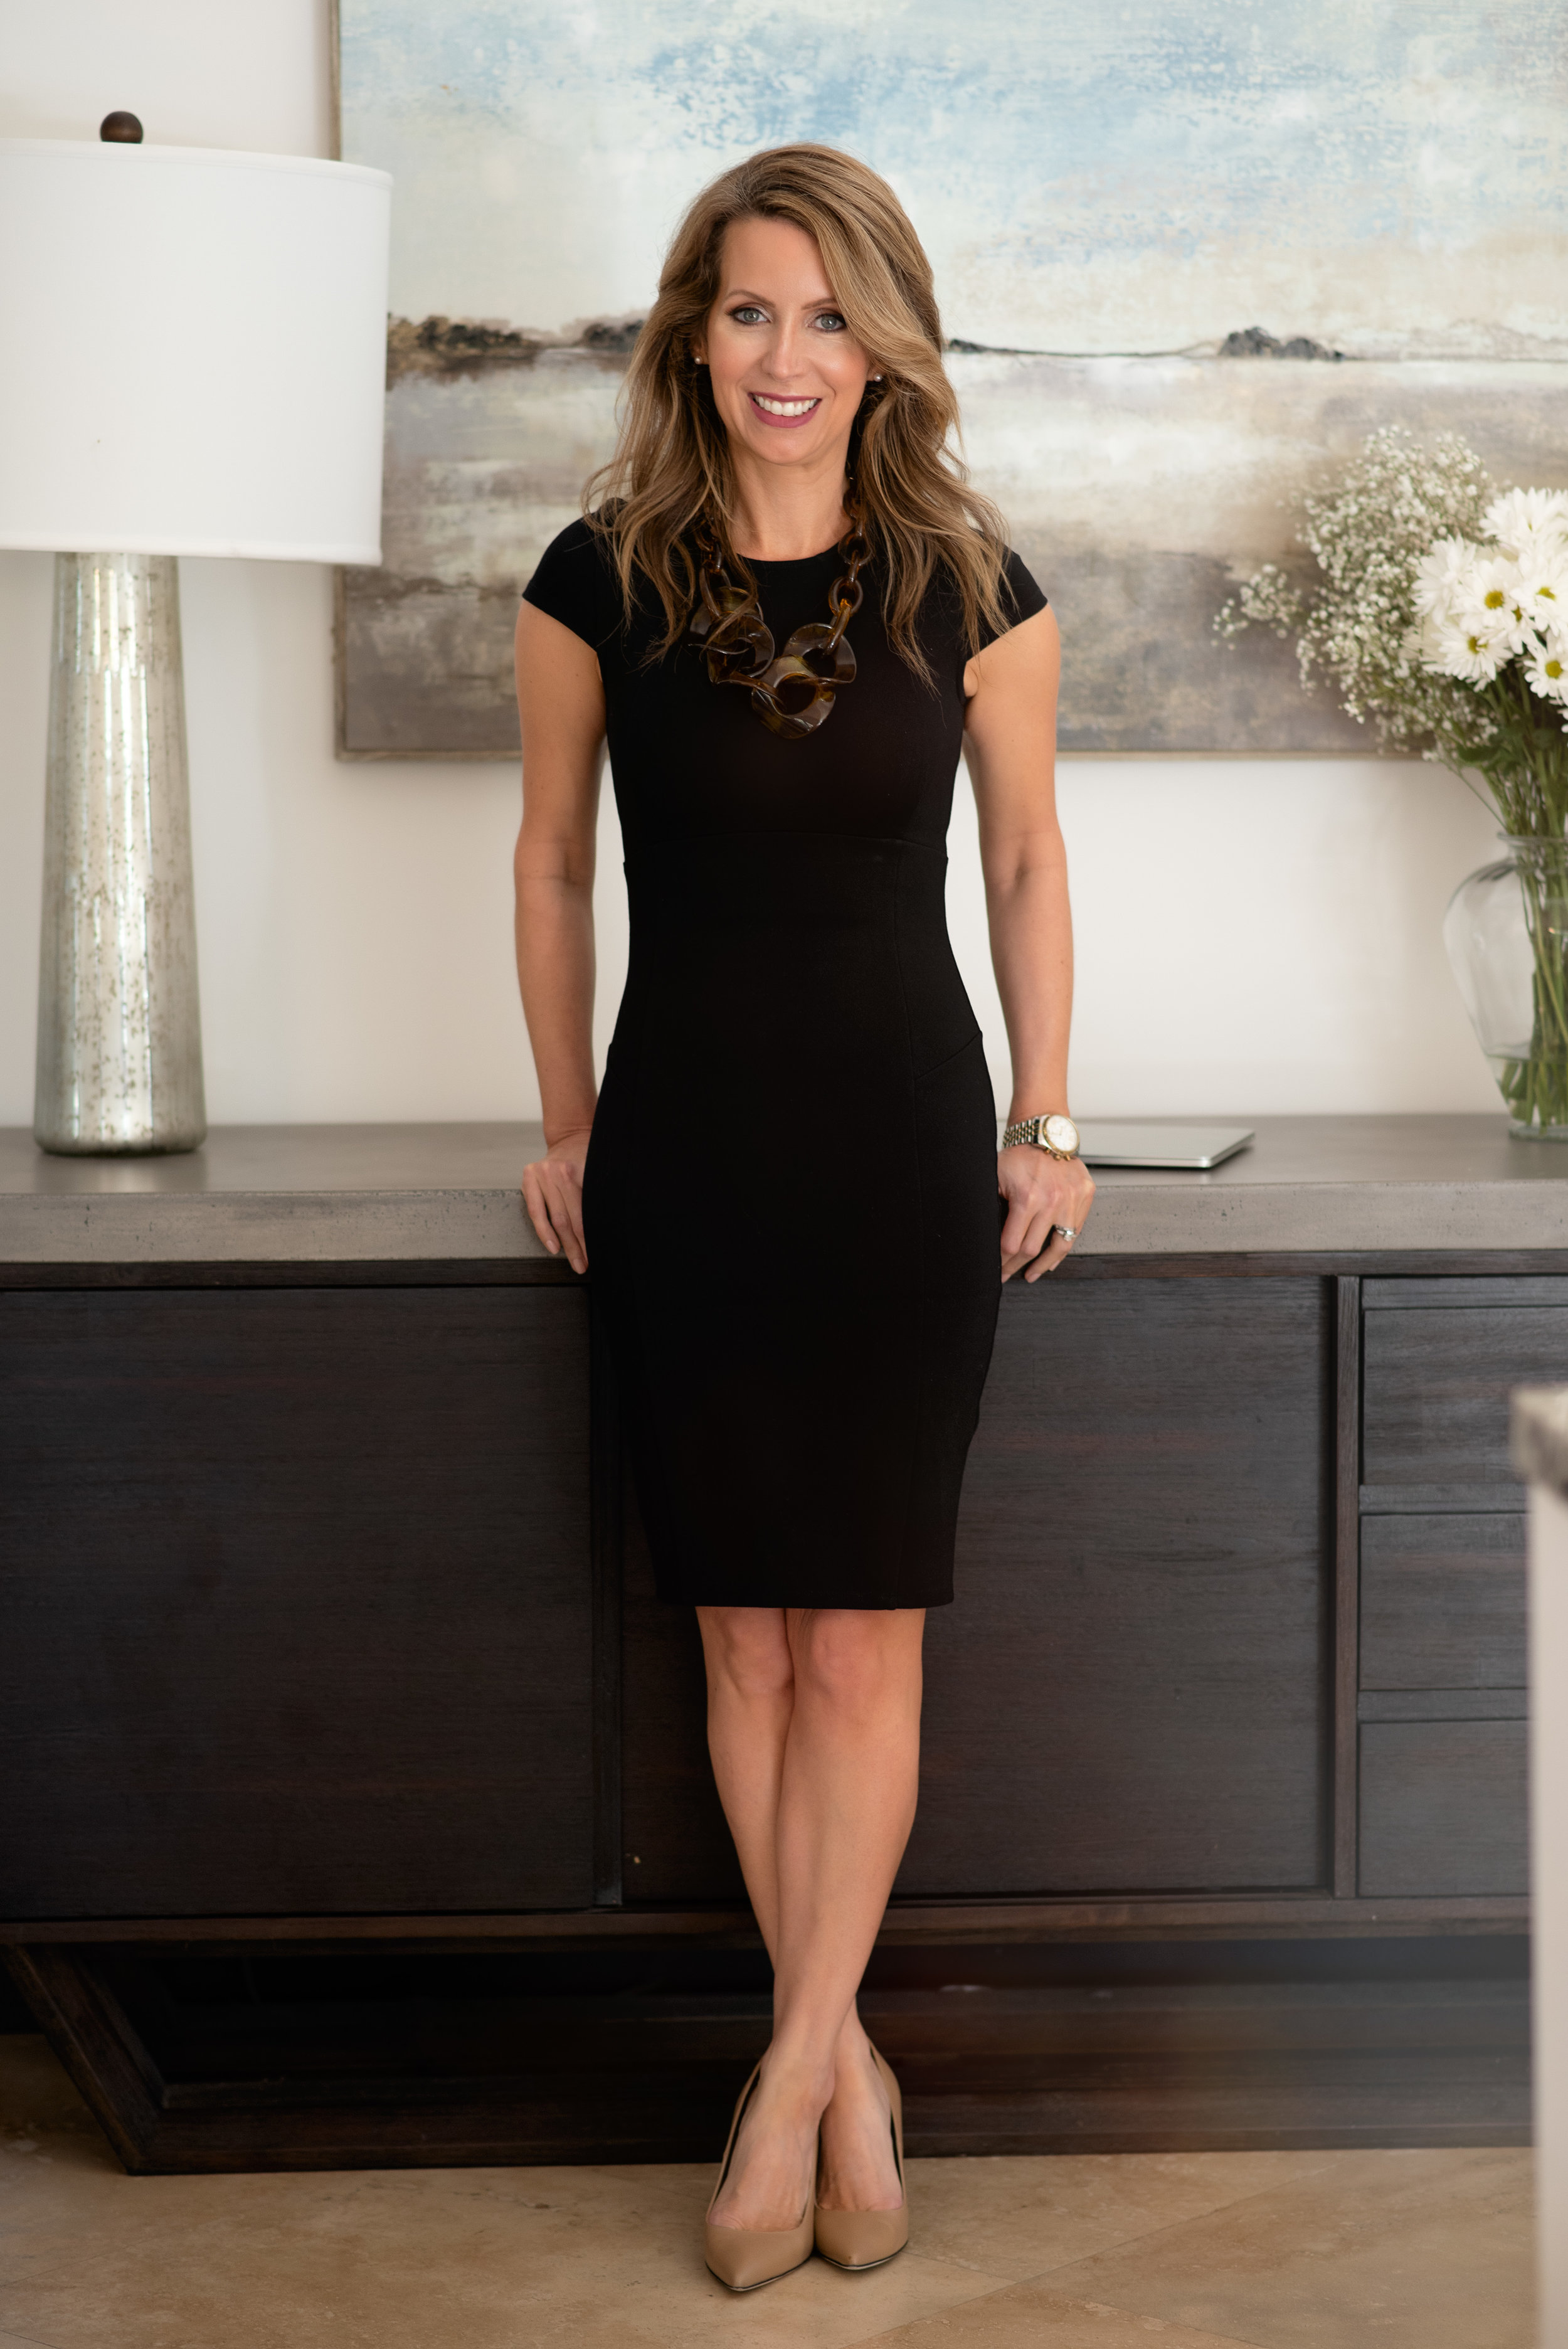 Work with me to improve your quality of life. - I believe in living to your full-potential. The mind, body, nutrition, health connection is vital. As a Nurse Practitioner and Functional Nutritionist, I've combined the best of both worlds to serve you! Work with me to solve your frustrating health concerns once and for all.Learn more ➝